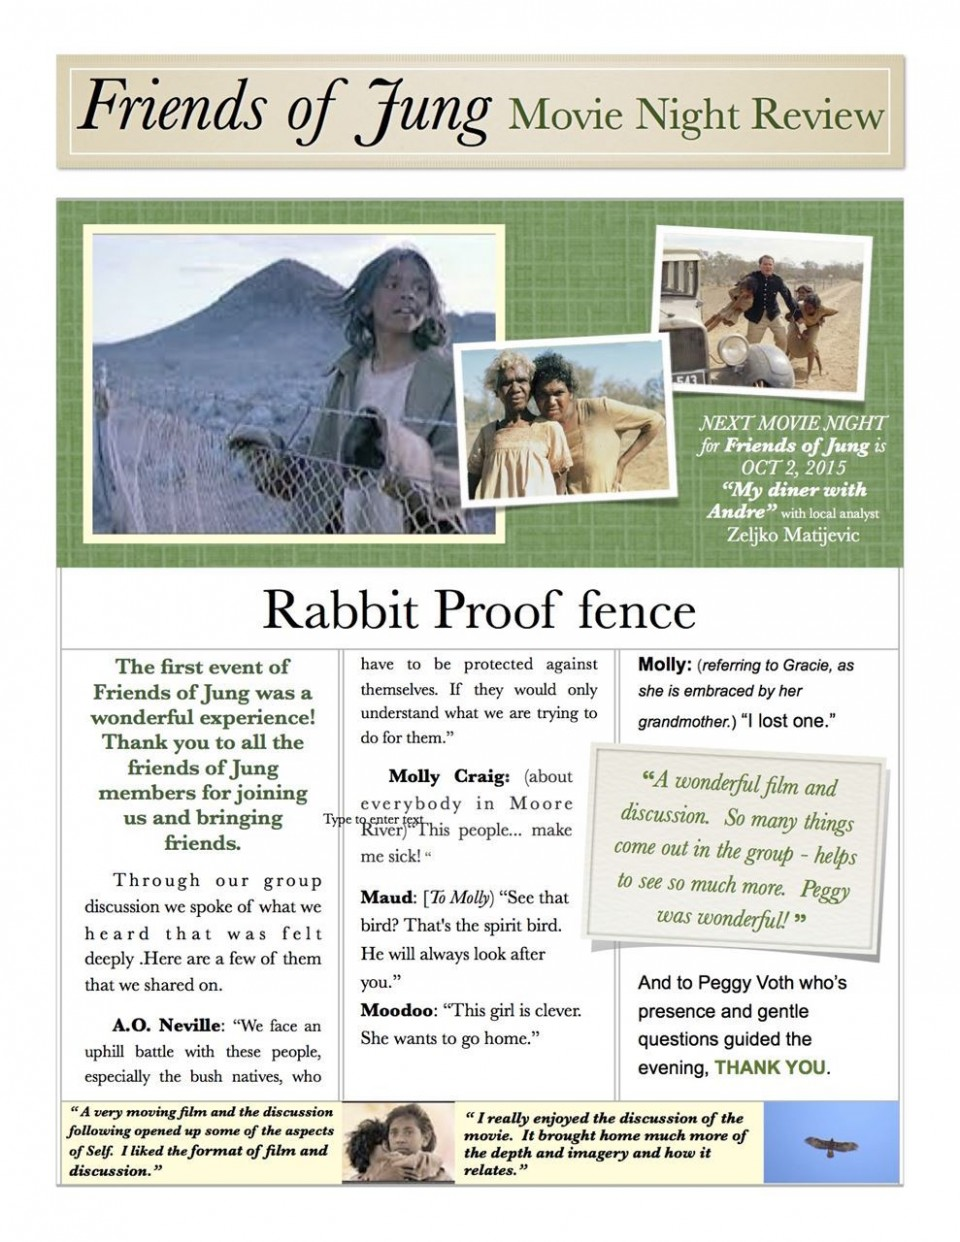 005 Essay Example Rabbit Proof Fence Review Top Film 960